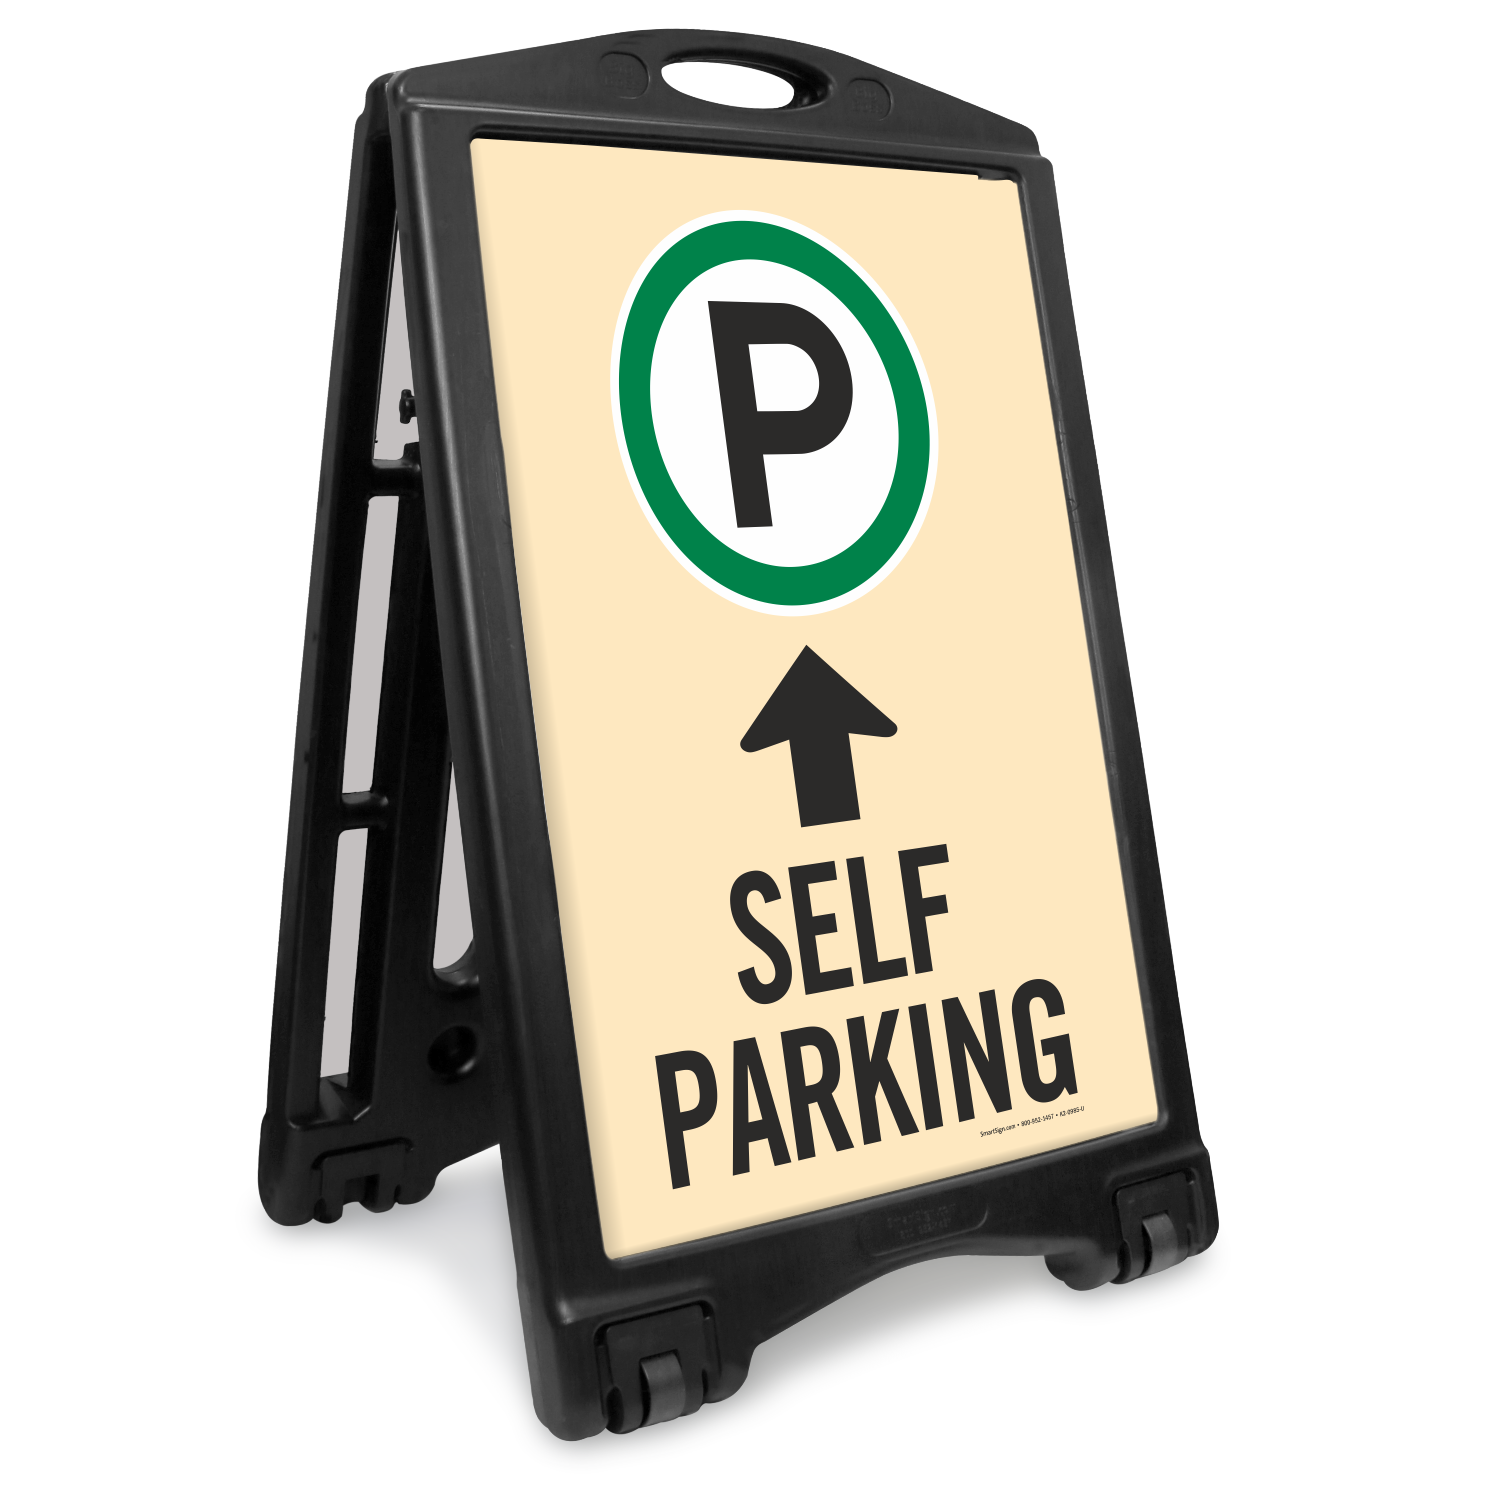 Self Park Signs. Vinyl Truck Lettering. Made Stickers Online. Term Banners. Day The Dead Decals. Dangerous Signs. Pvc Door Logo. Different Language Lettering. Vinyl Hanging Banners